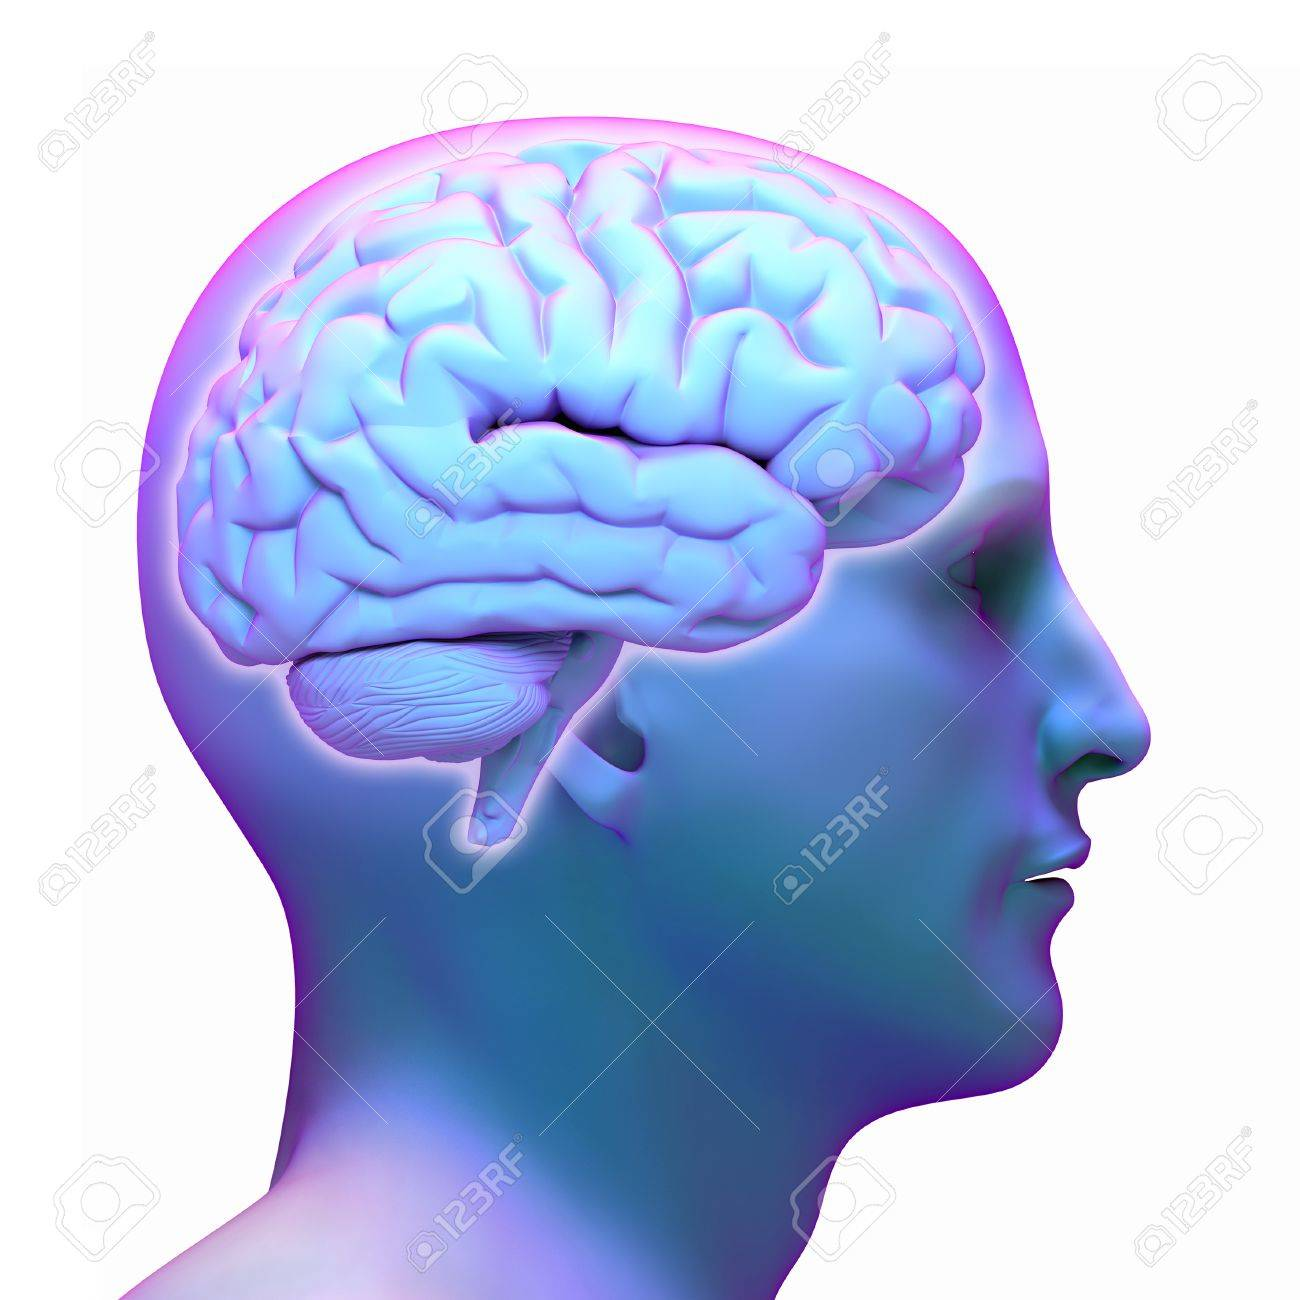 hight resolution of brain diagram in human head on white background stock photo 42047655